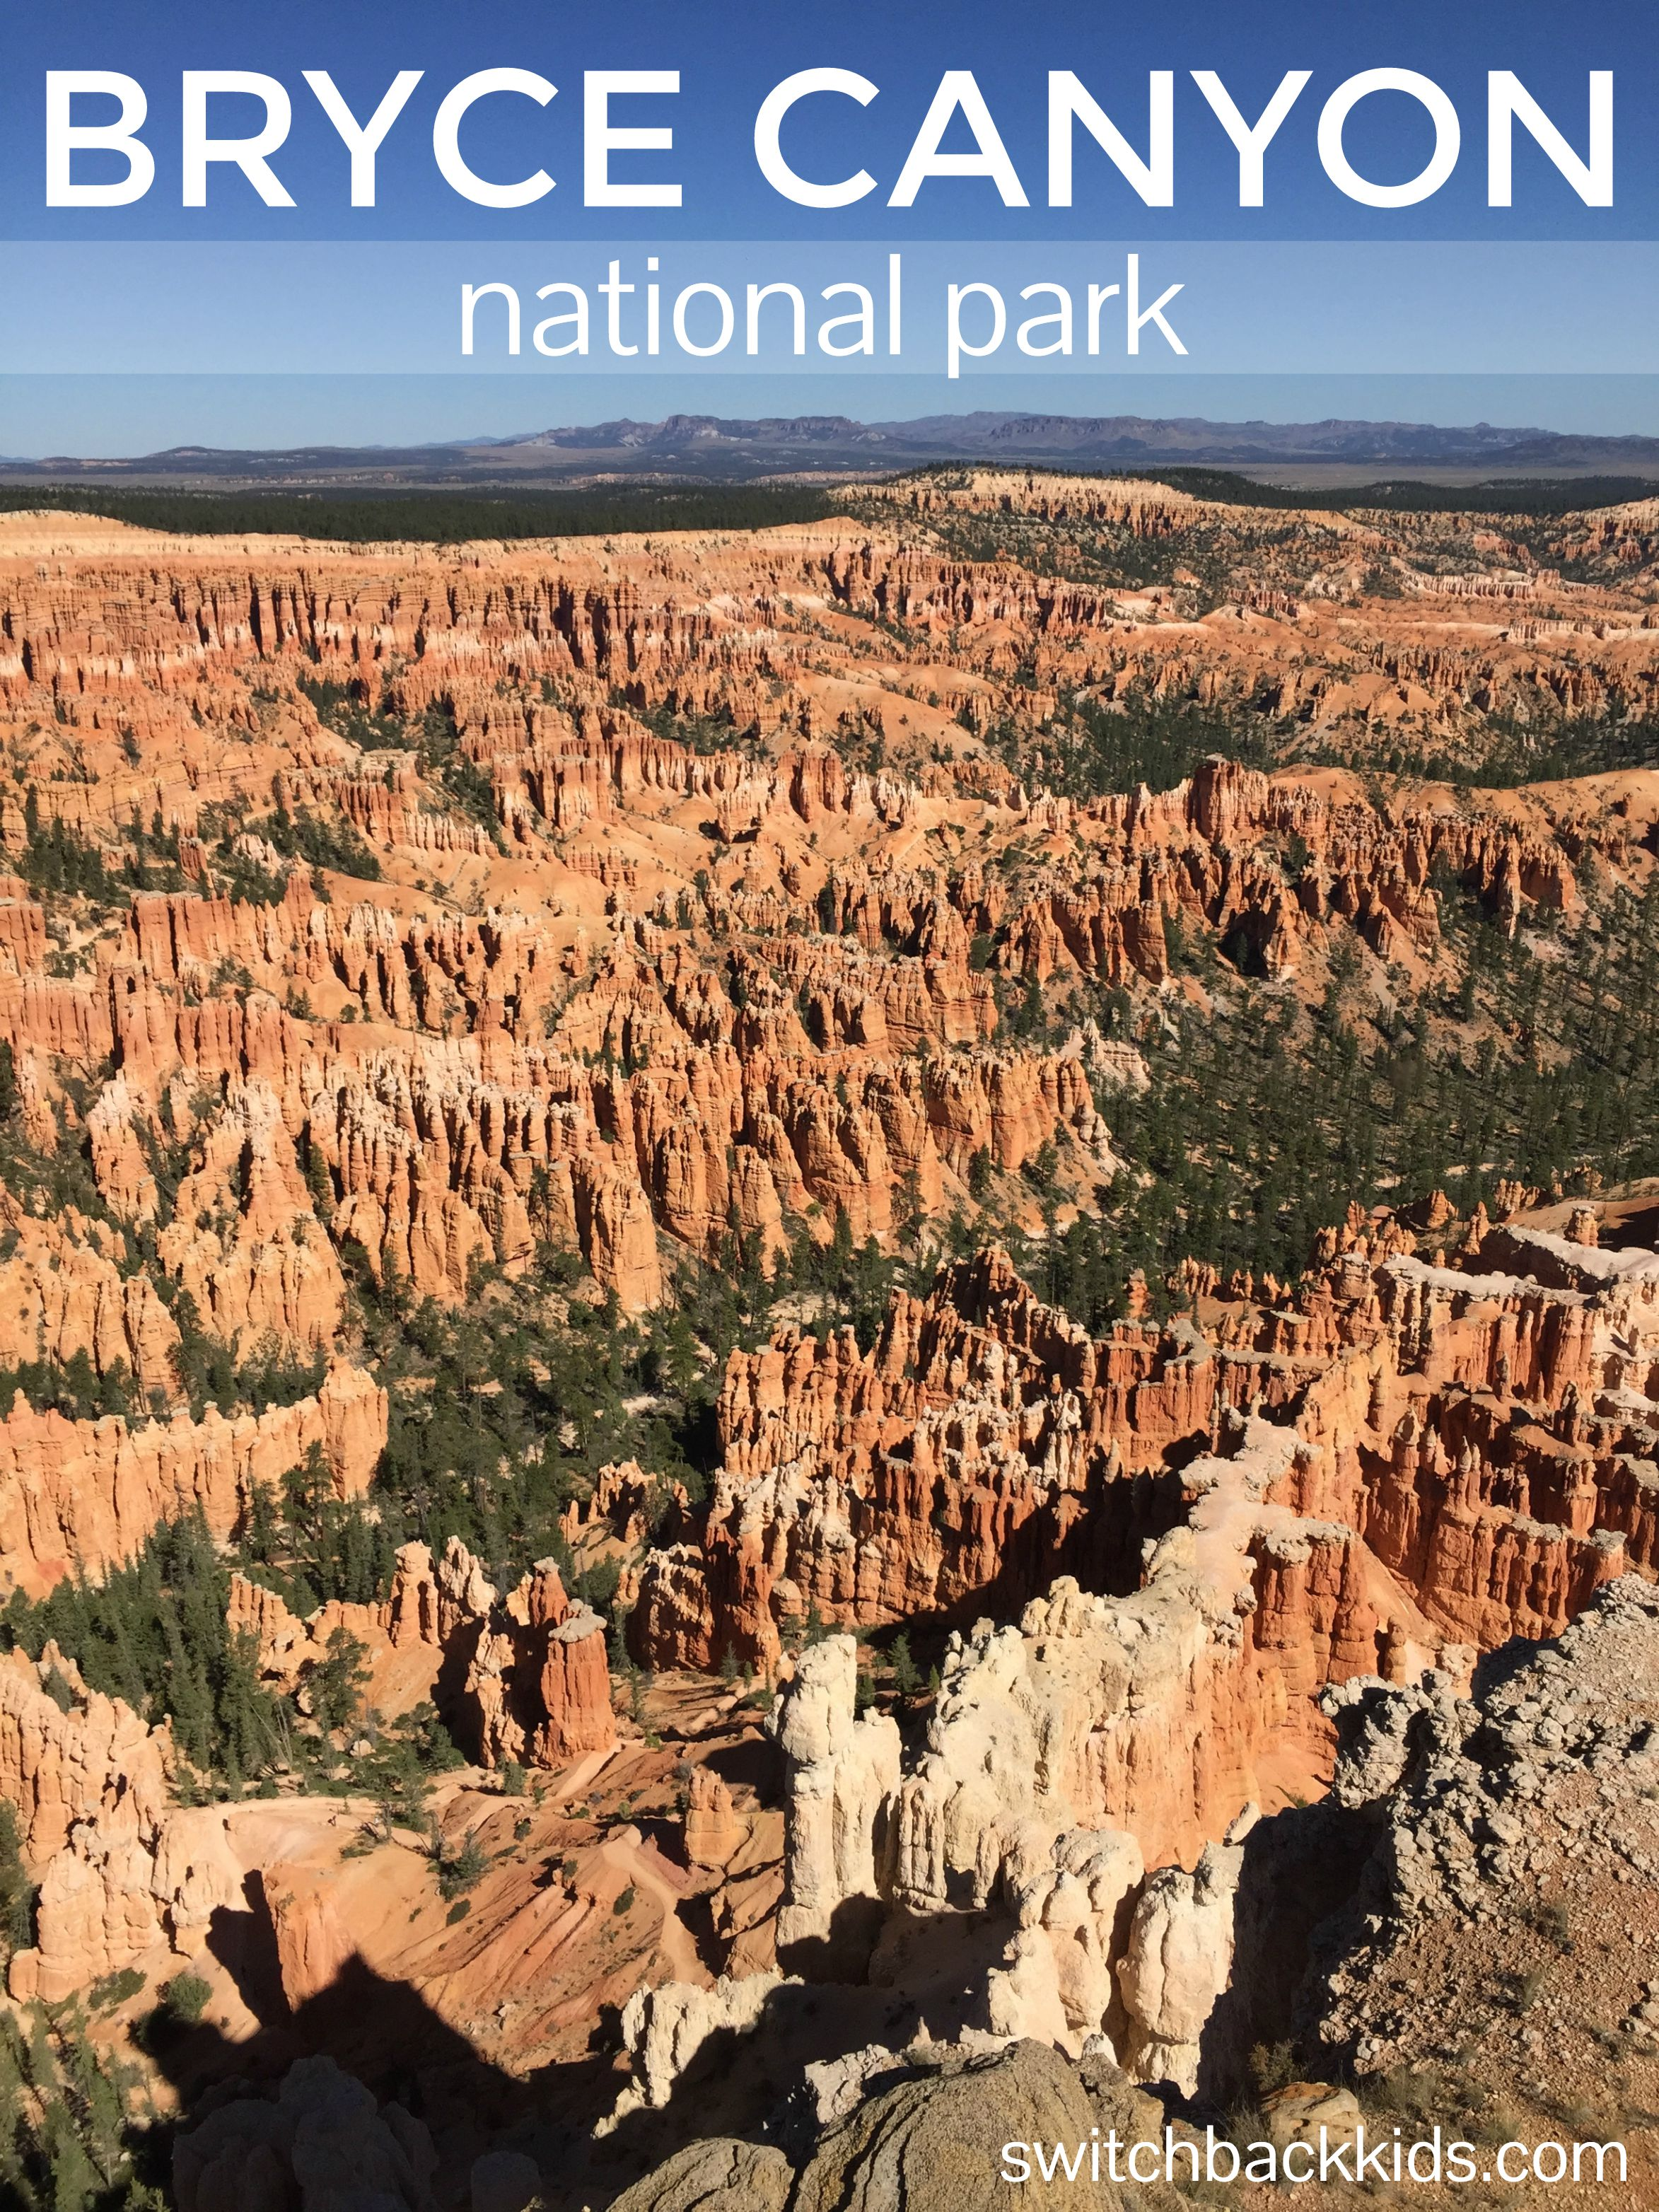 BRYCE CANYON WATER WORLD: Hoodoos, tropical storms, E. coli and flash floods